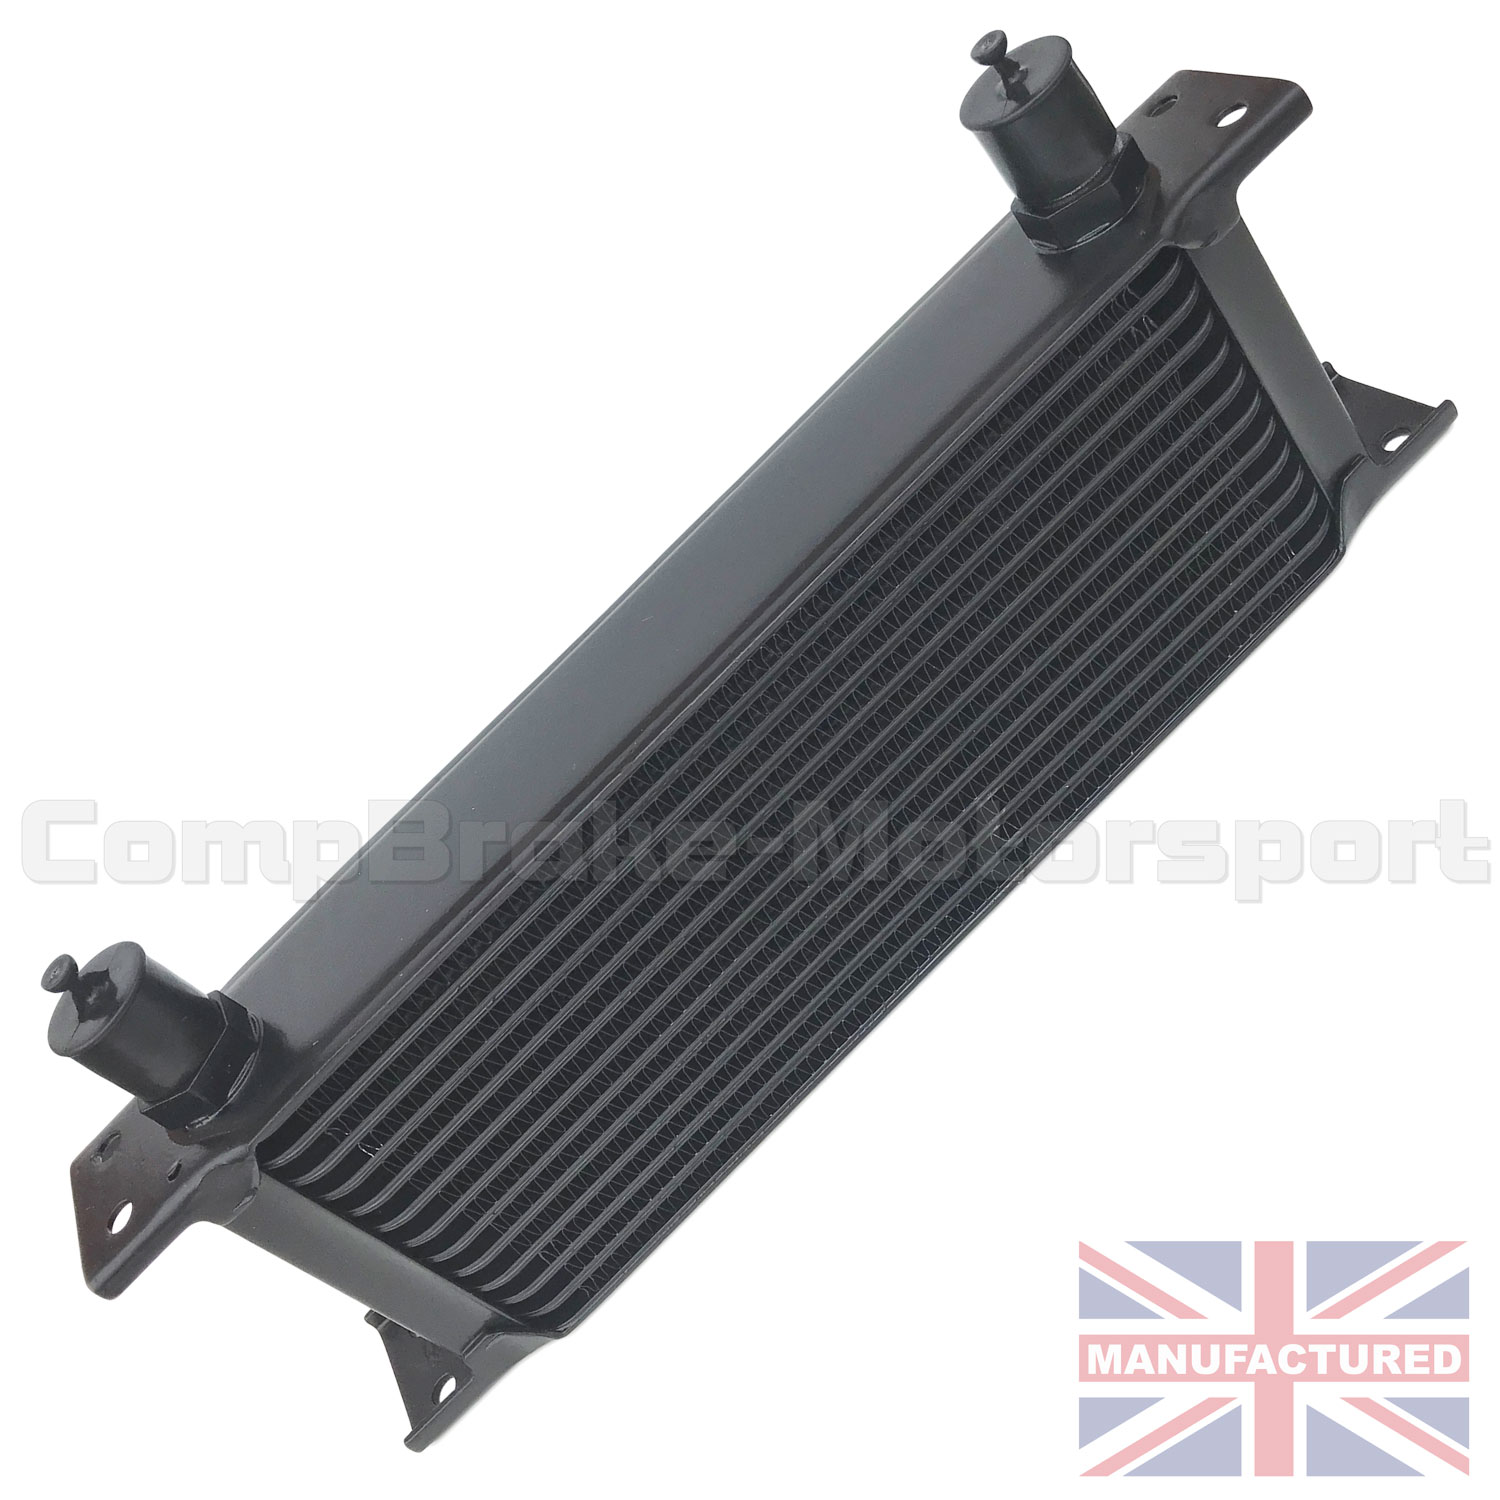 Details about  /NEW Universal Car Truck 7-Row 10AN Engine Transmission Racing Oil Cooler British